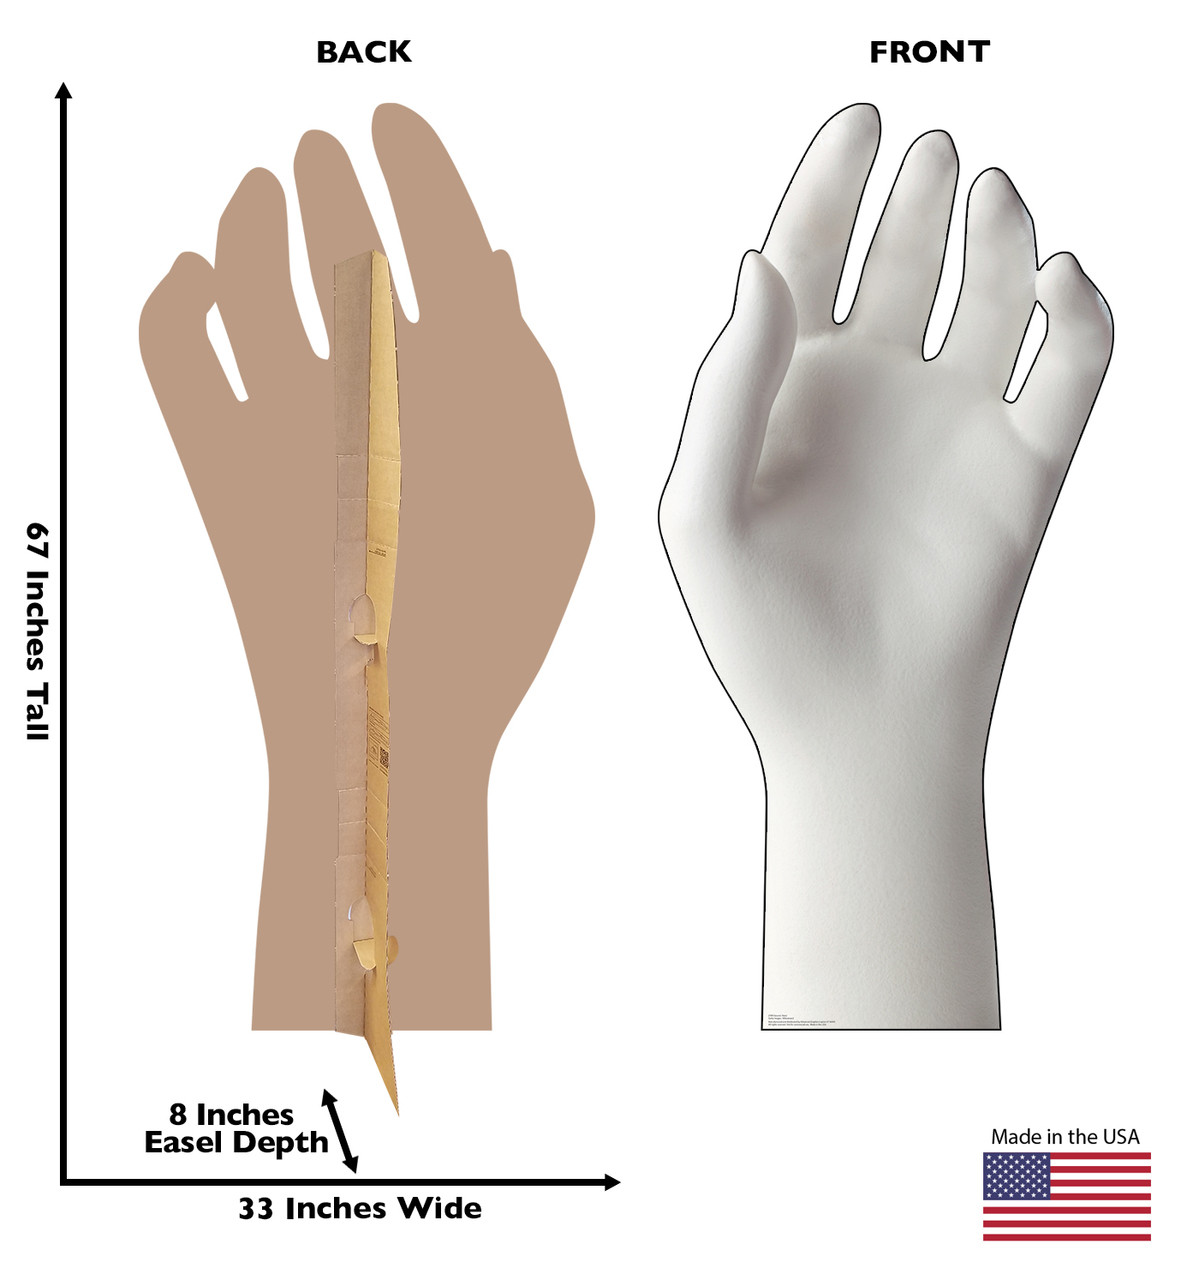 Life-size cardboard standee of a Ceramic Hand with back and front dimensions.